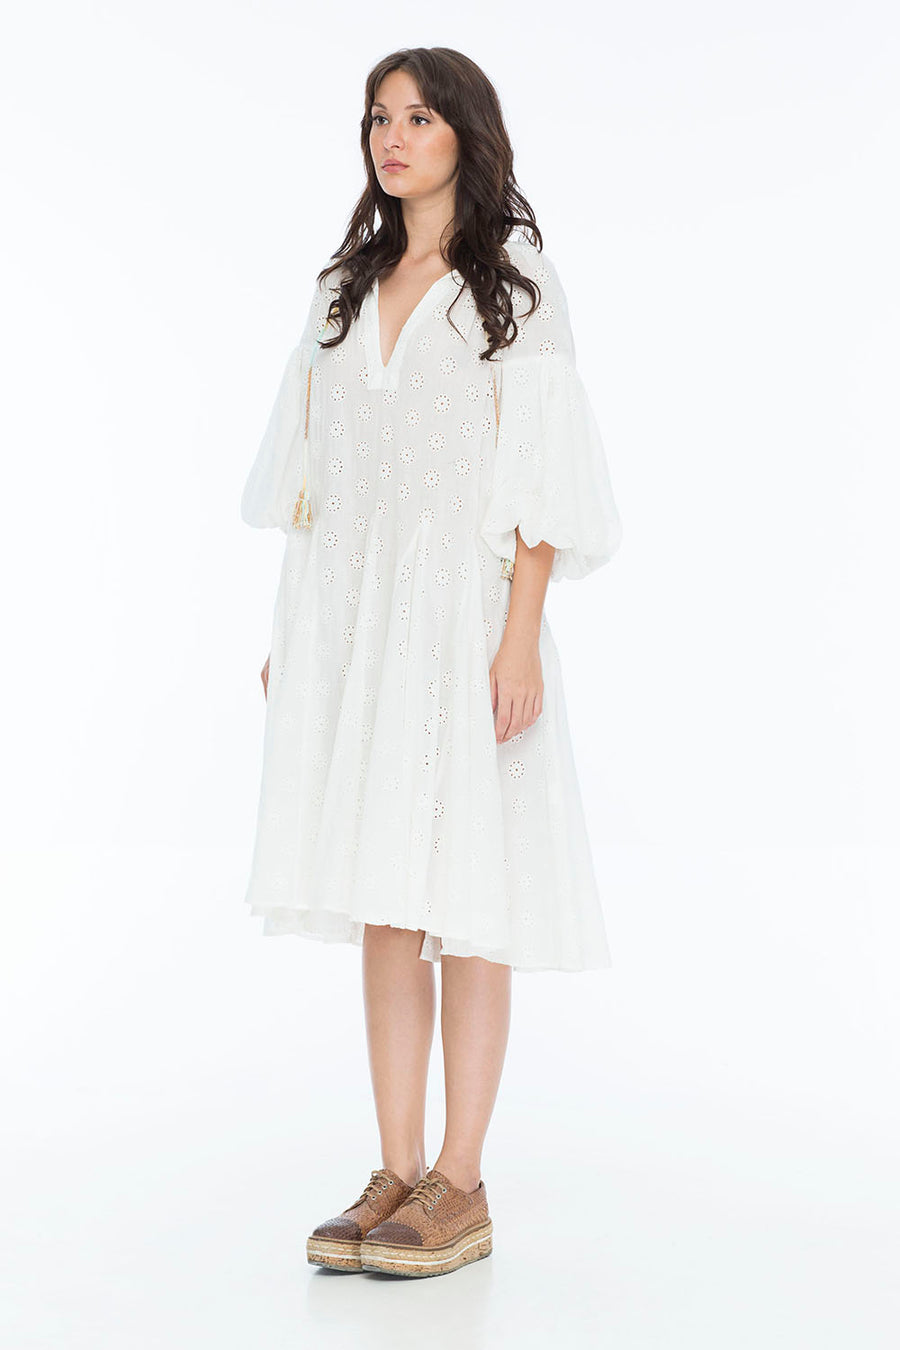 JENNA HIPP DRESS EYELETT WHITE